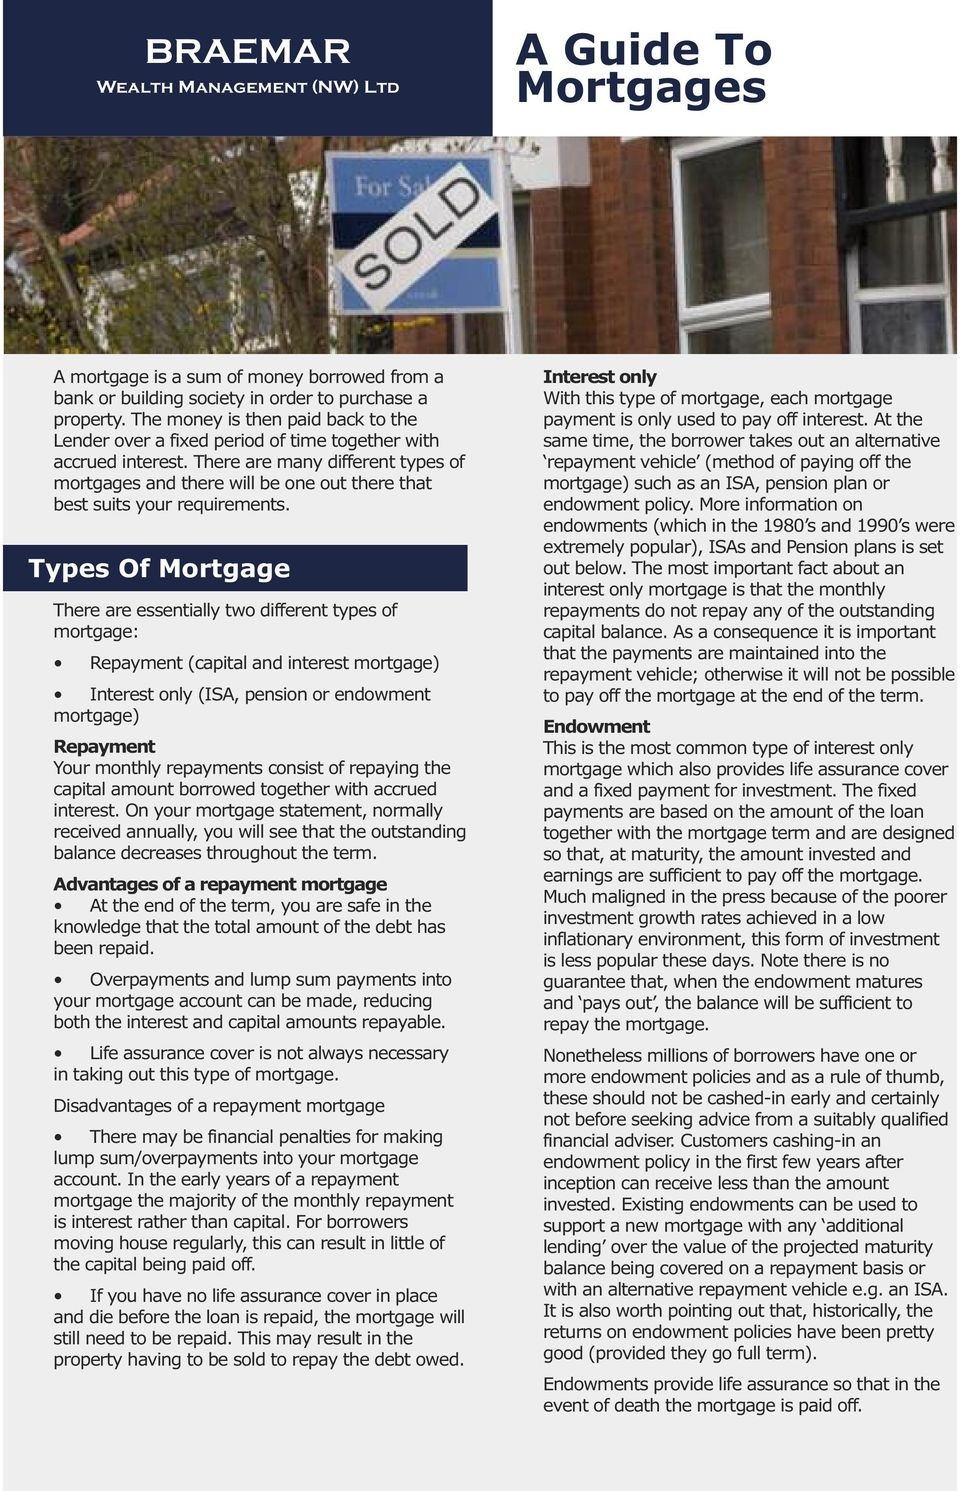 There are many different types of mortgages and there will be one out there that best suits your requirements.